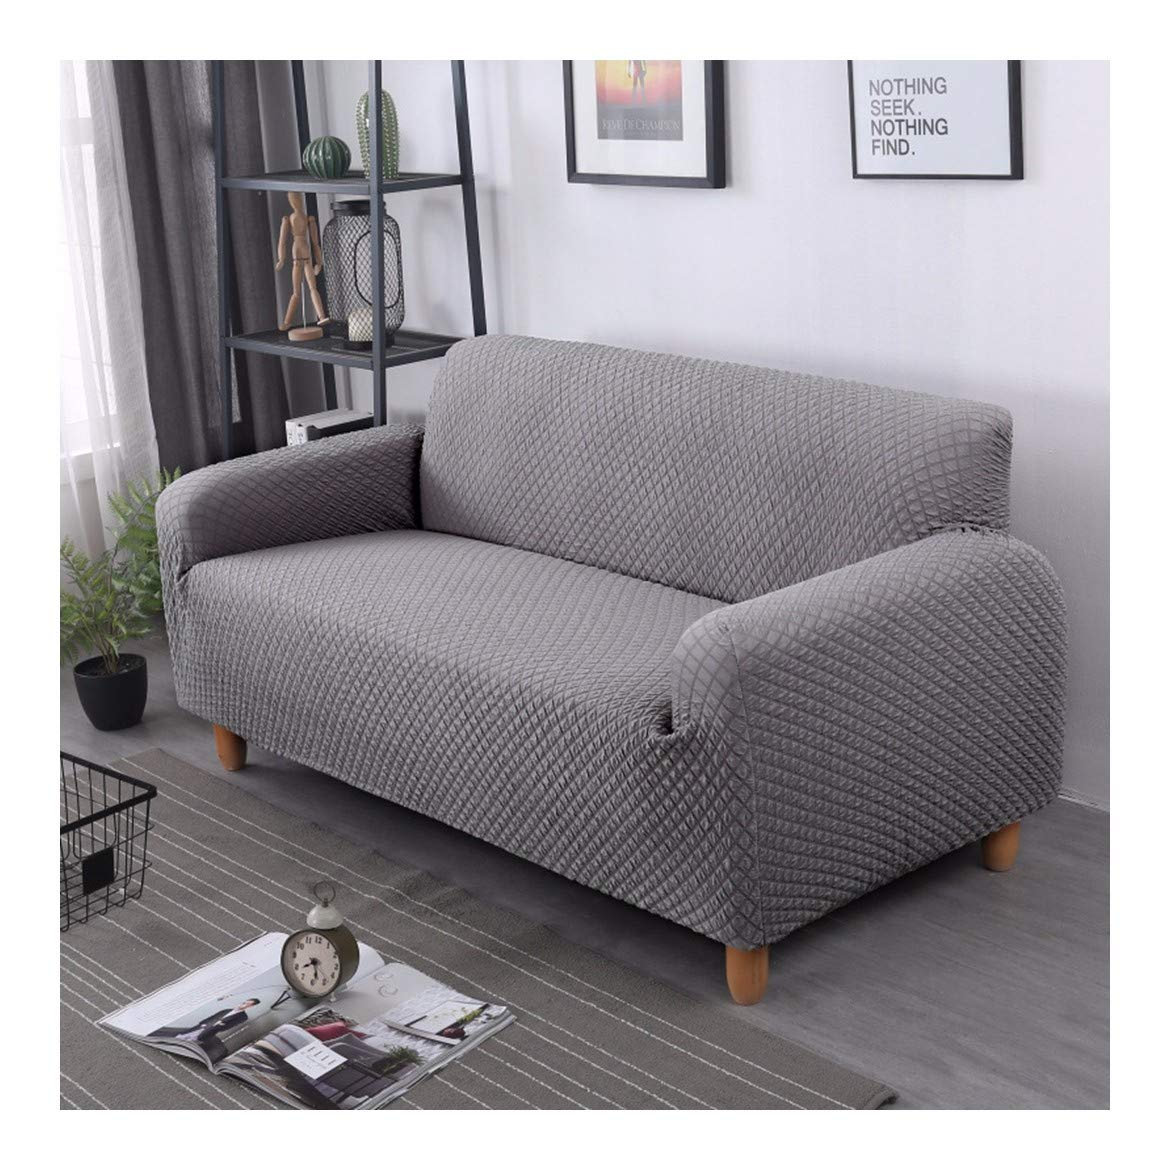 4seat VGUYFUYH Grey Skid-Proof Knitted Square Sofa Cover Polyester Full Package Elasticity Household Universal Sofa Cover Simple Fashion One Set Durable Dustproof Pet Dog Predective Cover,4Seat